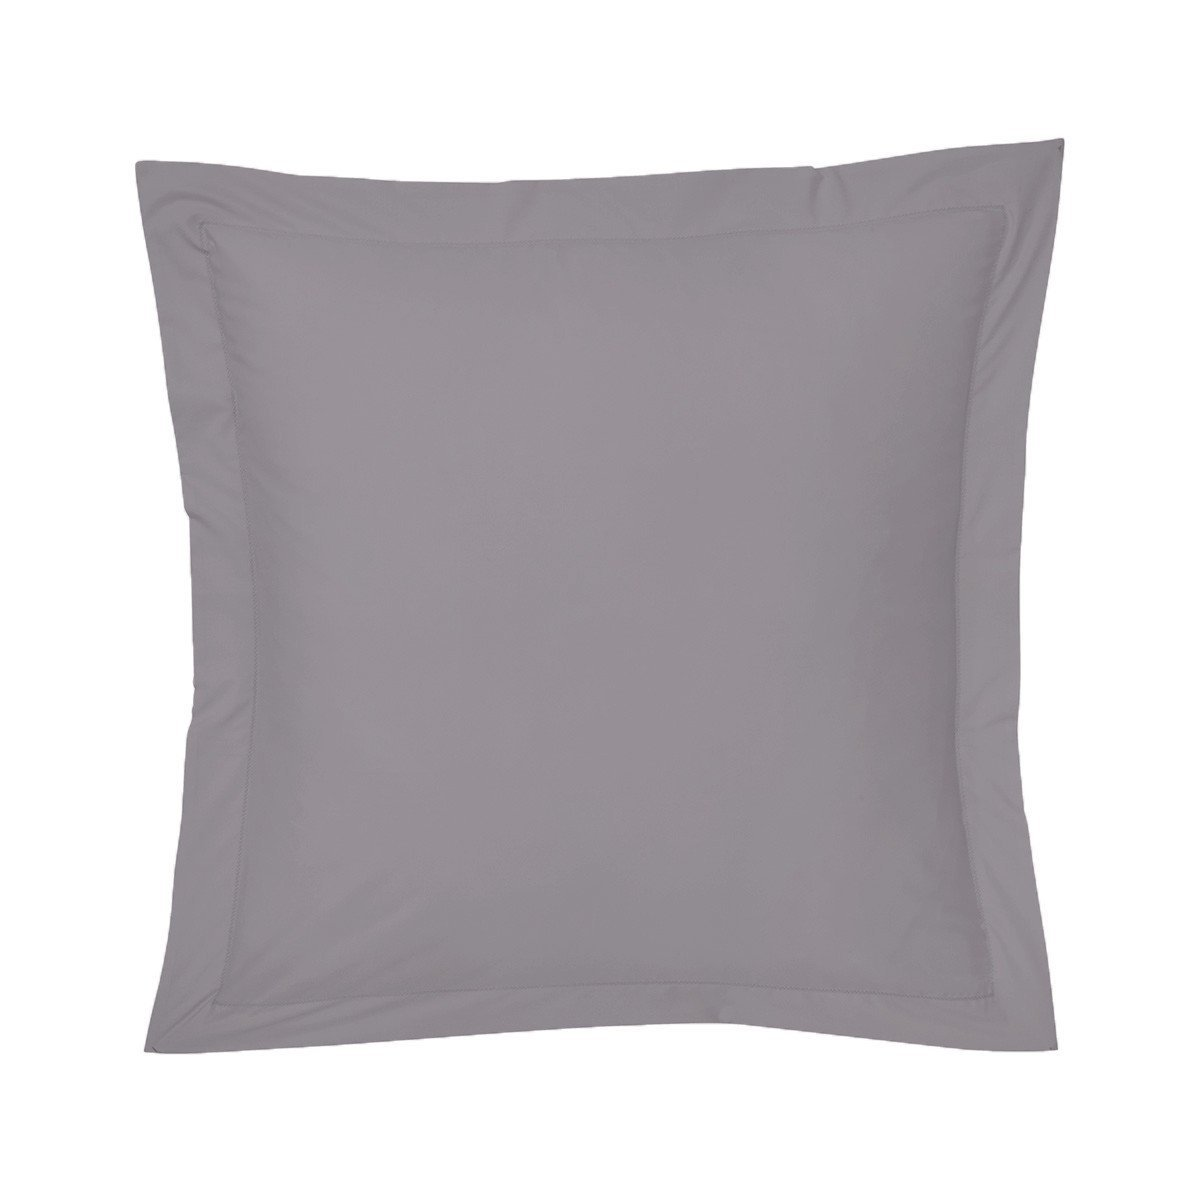 Roma Platine Gray Bedding Collection by Yves Delorme | Fig Linens - Gray bed linen, euro sham